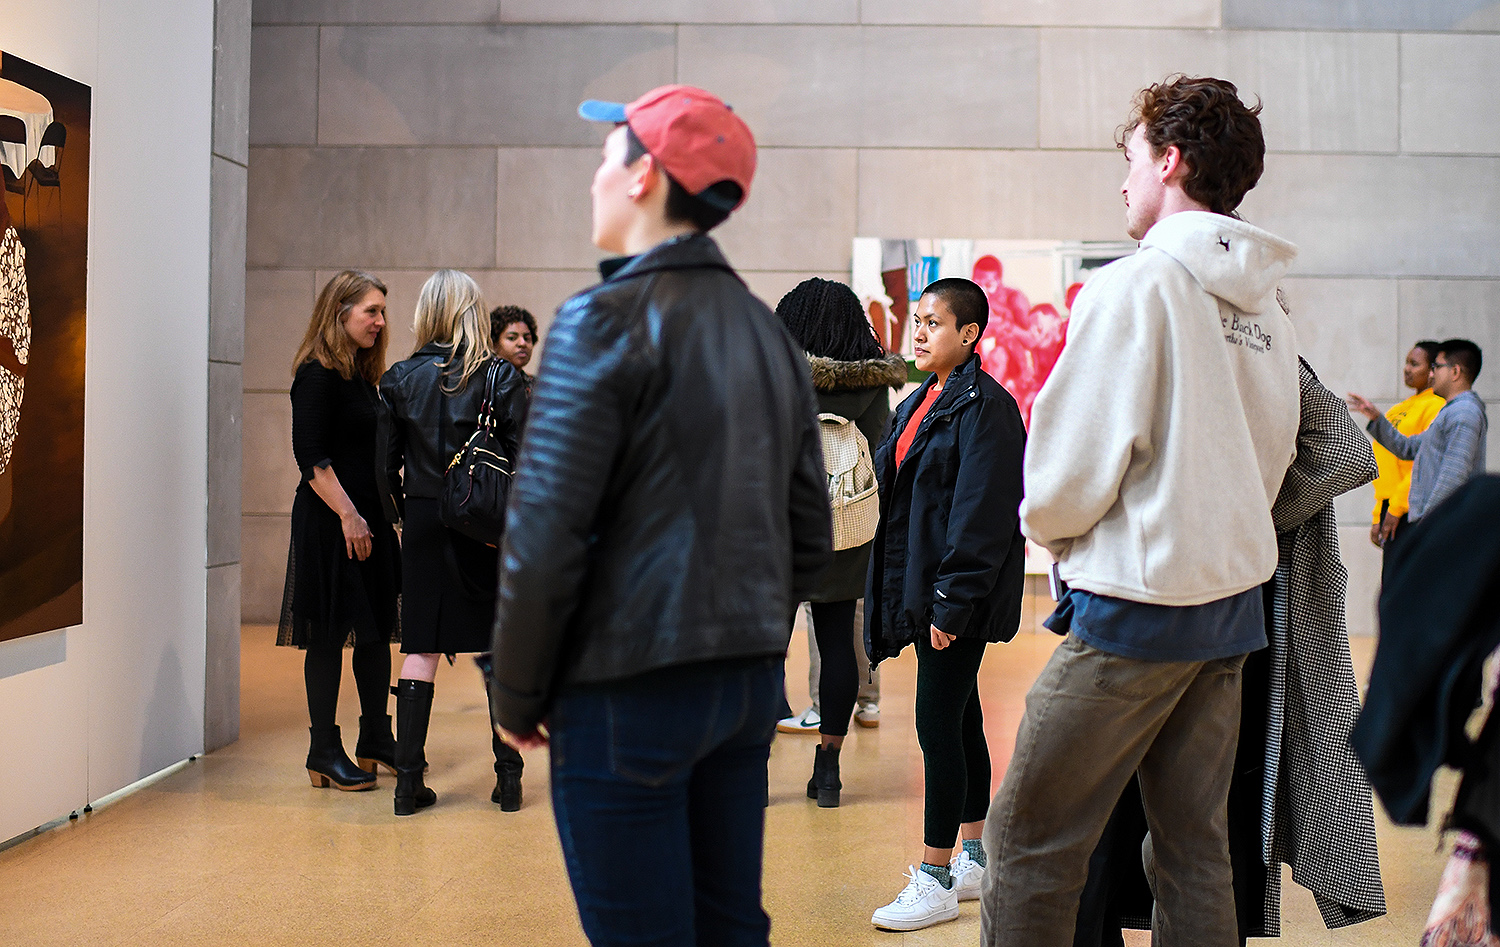 Seniors in the Department of Art and Art History's Art Studio Program are displaying their work throughout the month of April in Zilkha Gallery